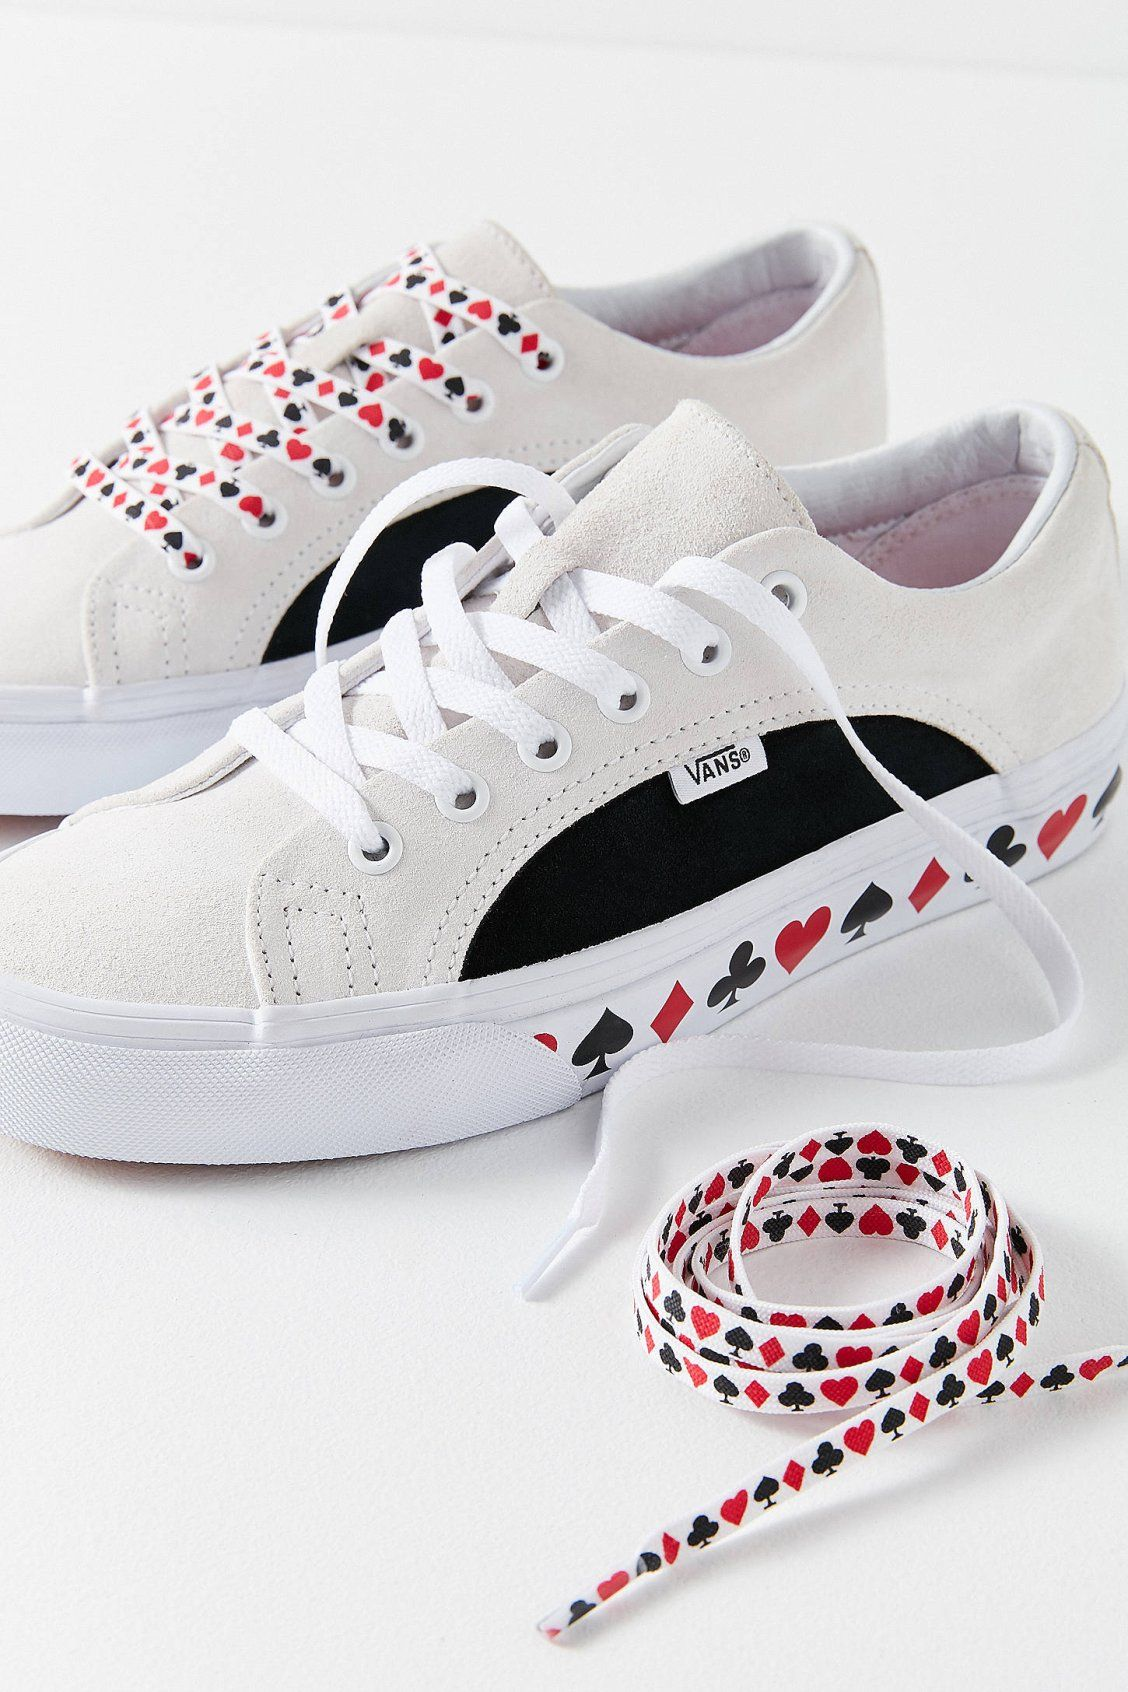 c9a8d1267bc5 Vans UO Exclusive Playing Card Lampin Suede Sneaker in 2019